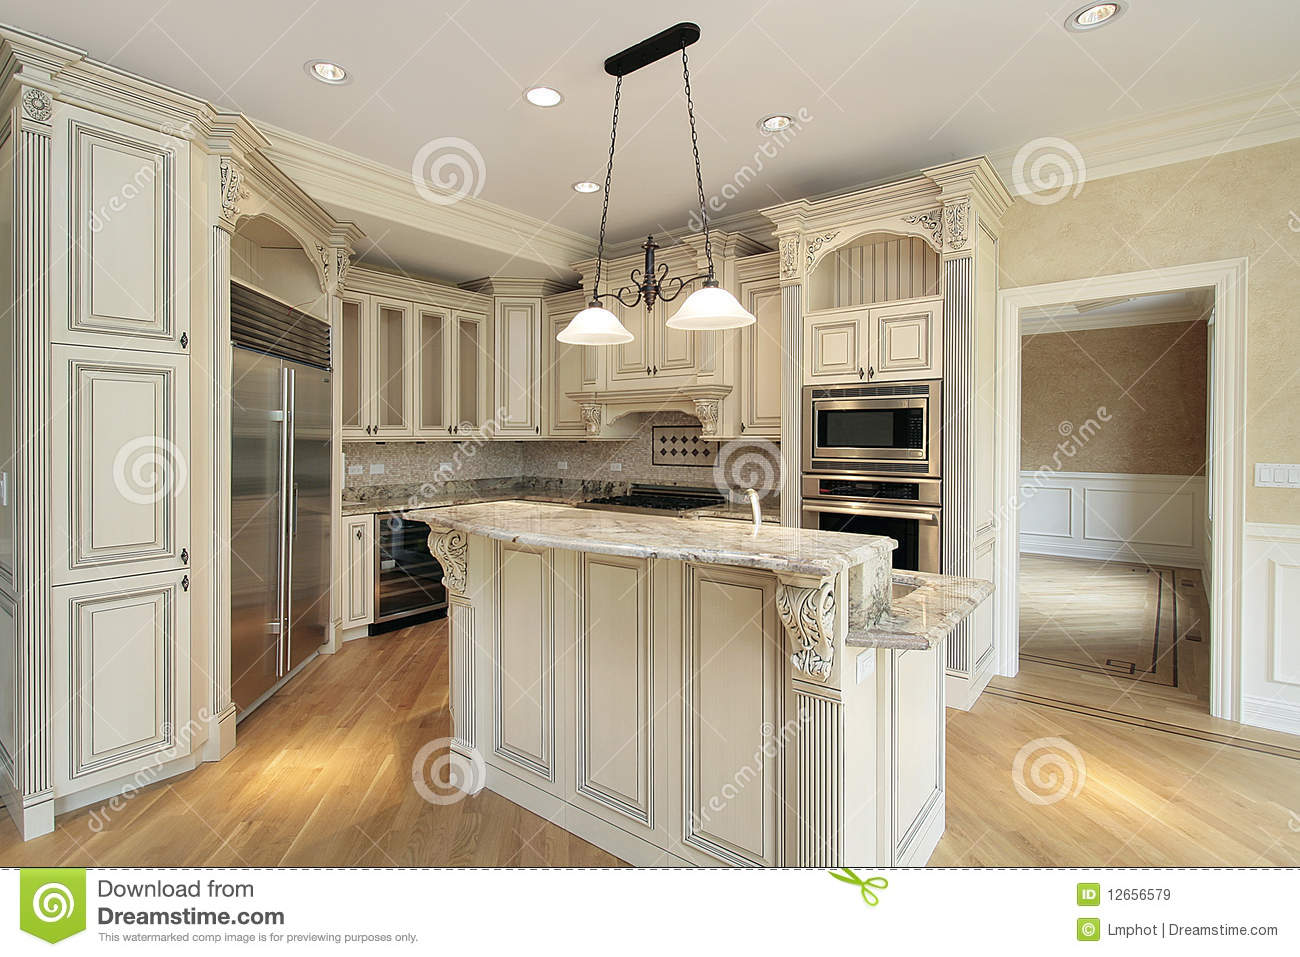 kitchen with marble island royalty free stock images image 12656579 home kitchen